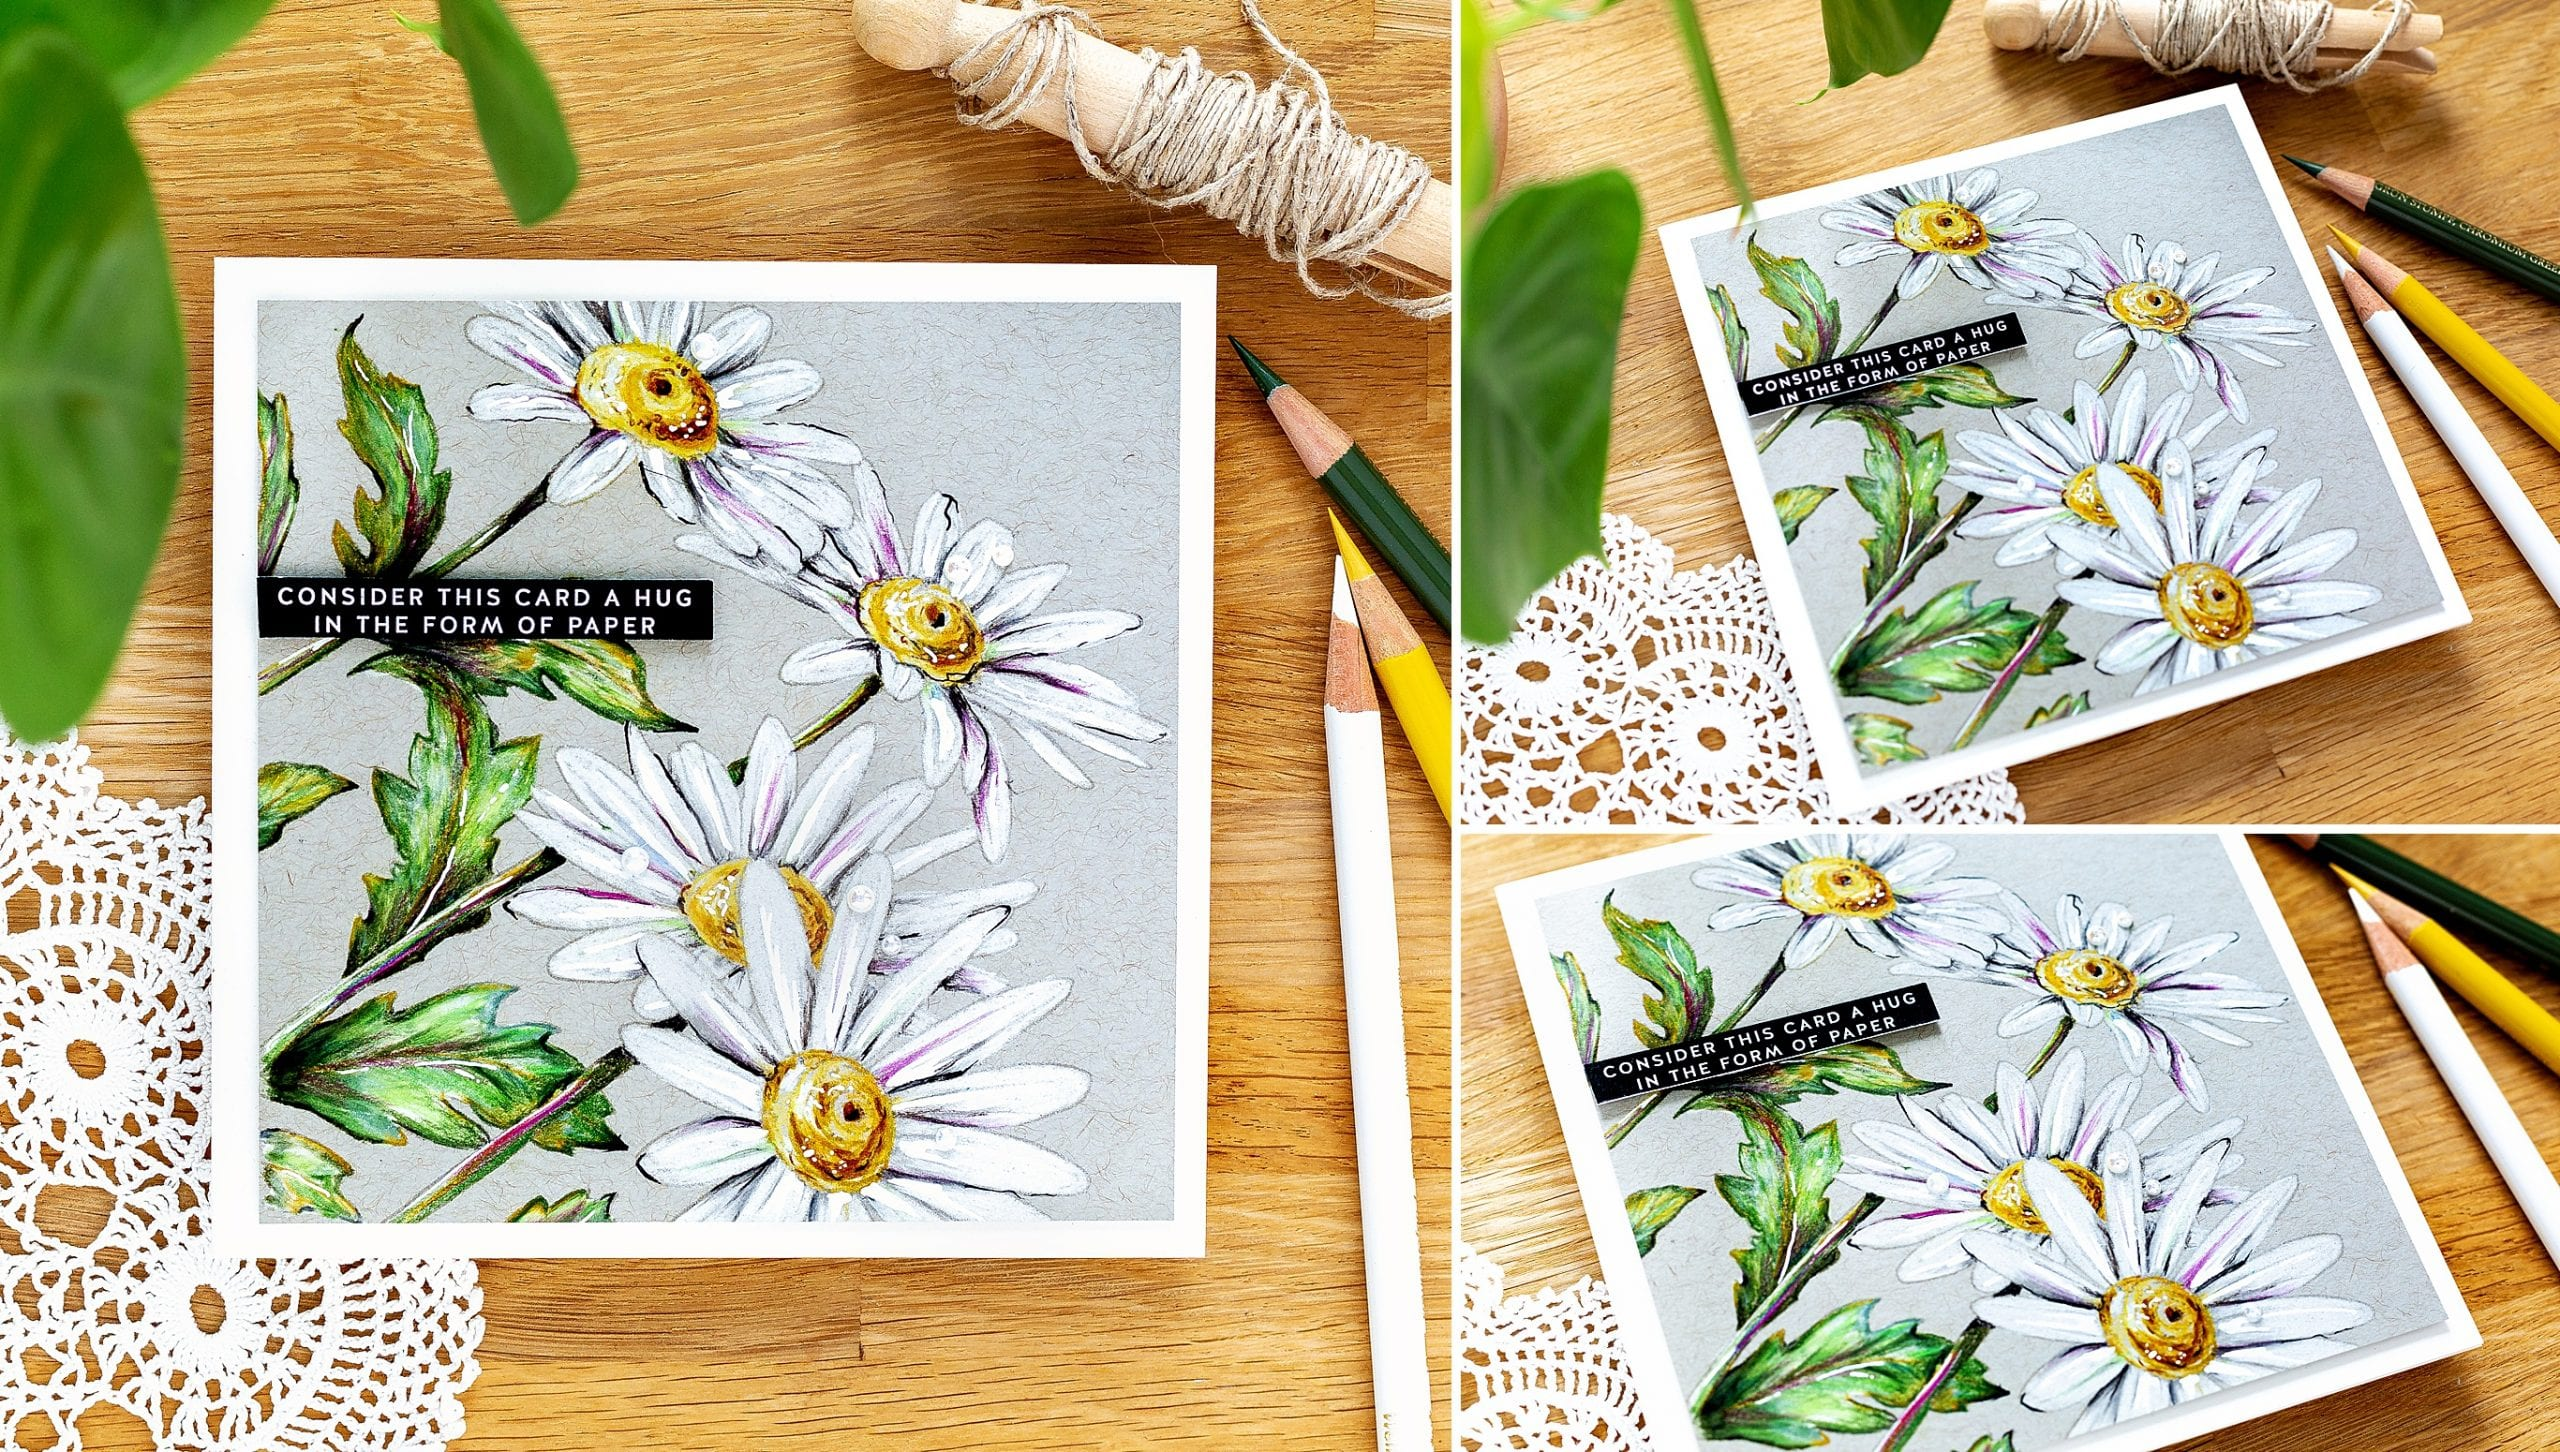 Coloured pencils on kraft handmade card tutorial by Debby Hughes using supplies from Simon Says Stamp #pencils #homemade